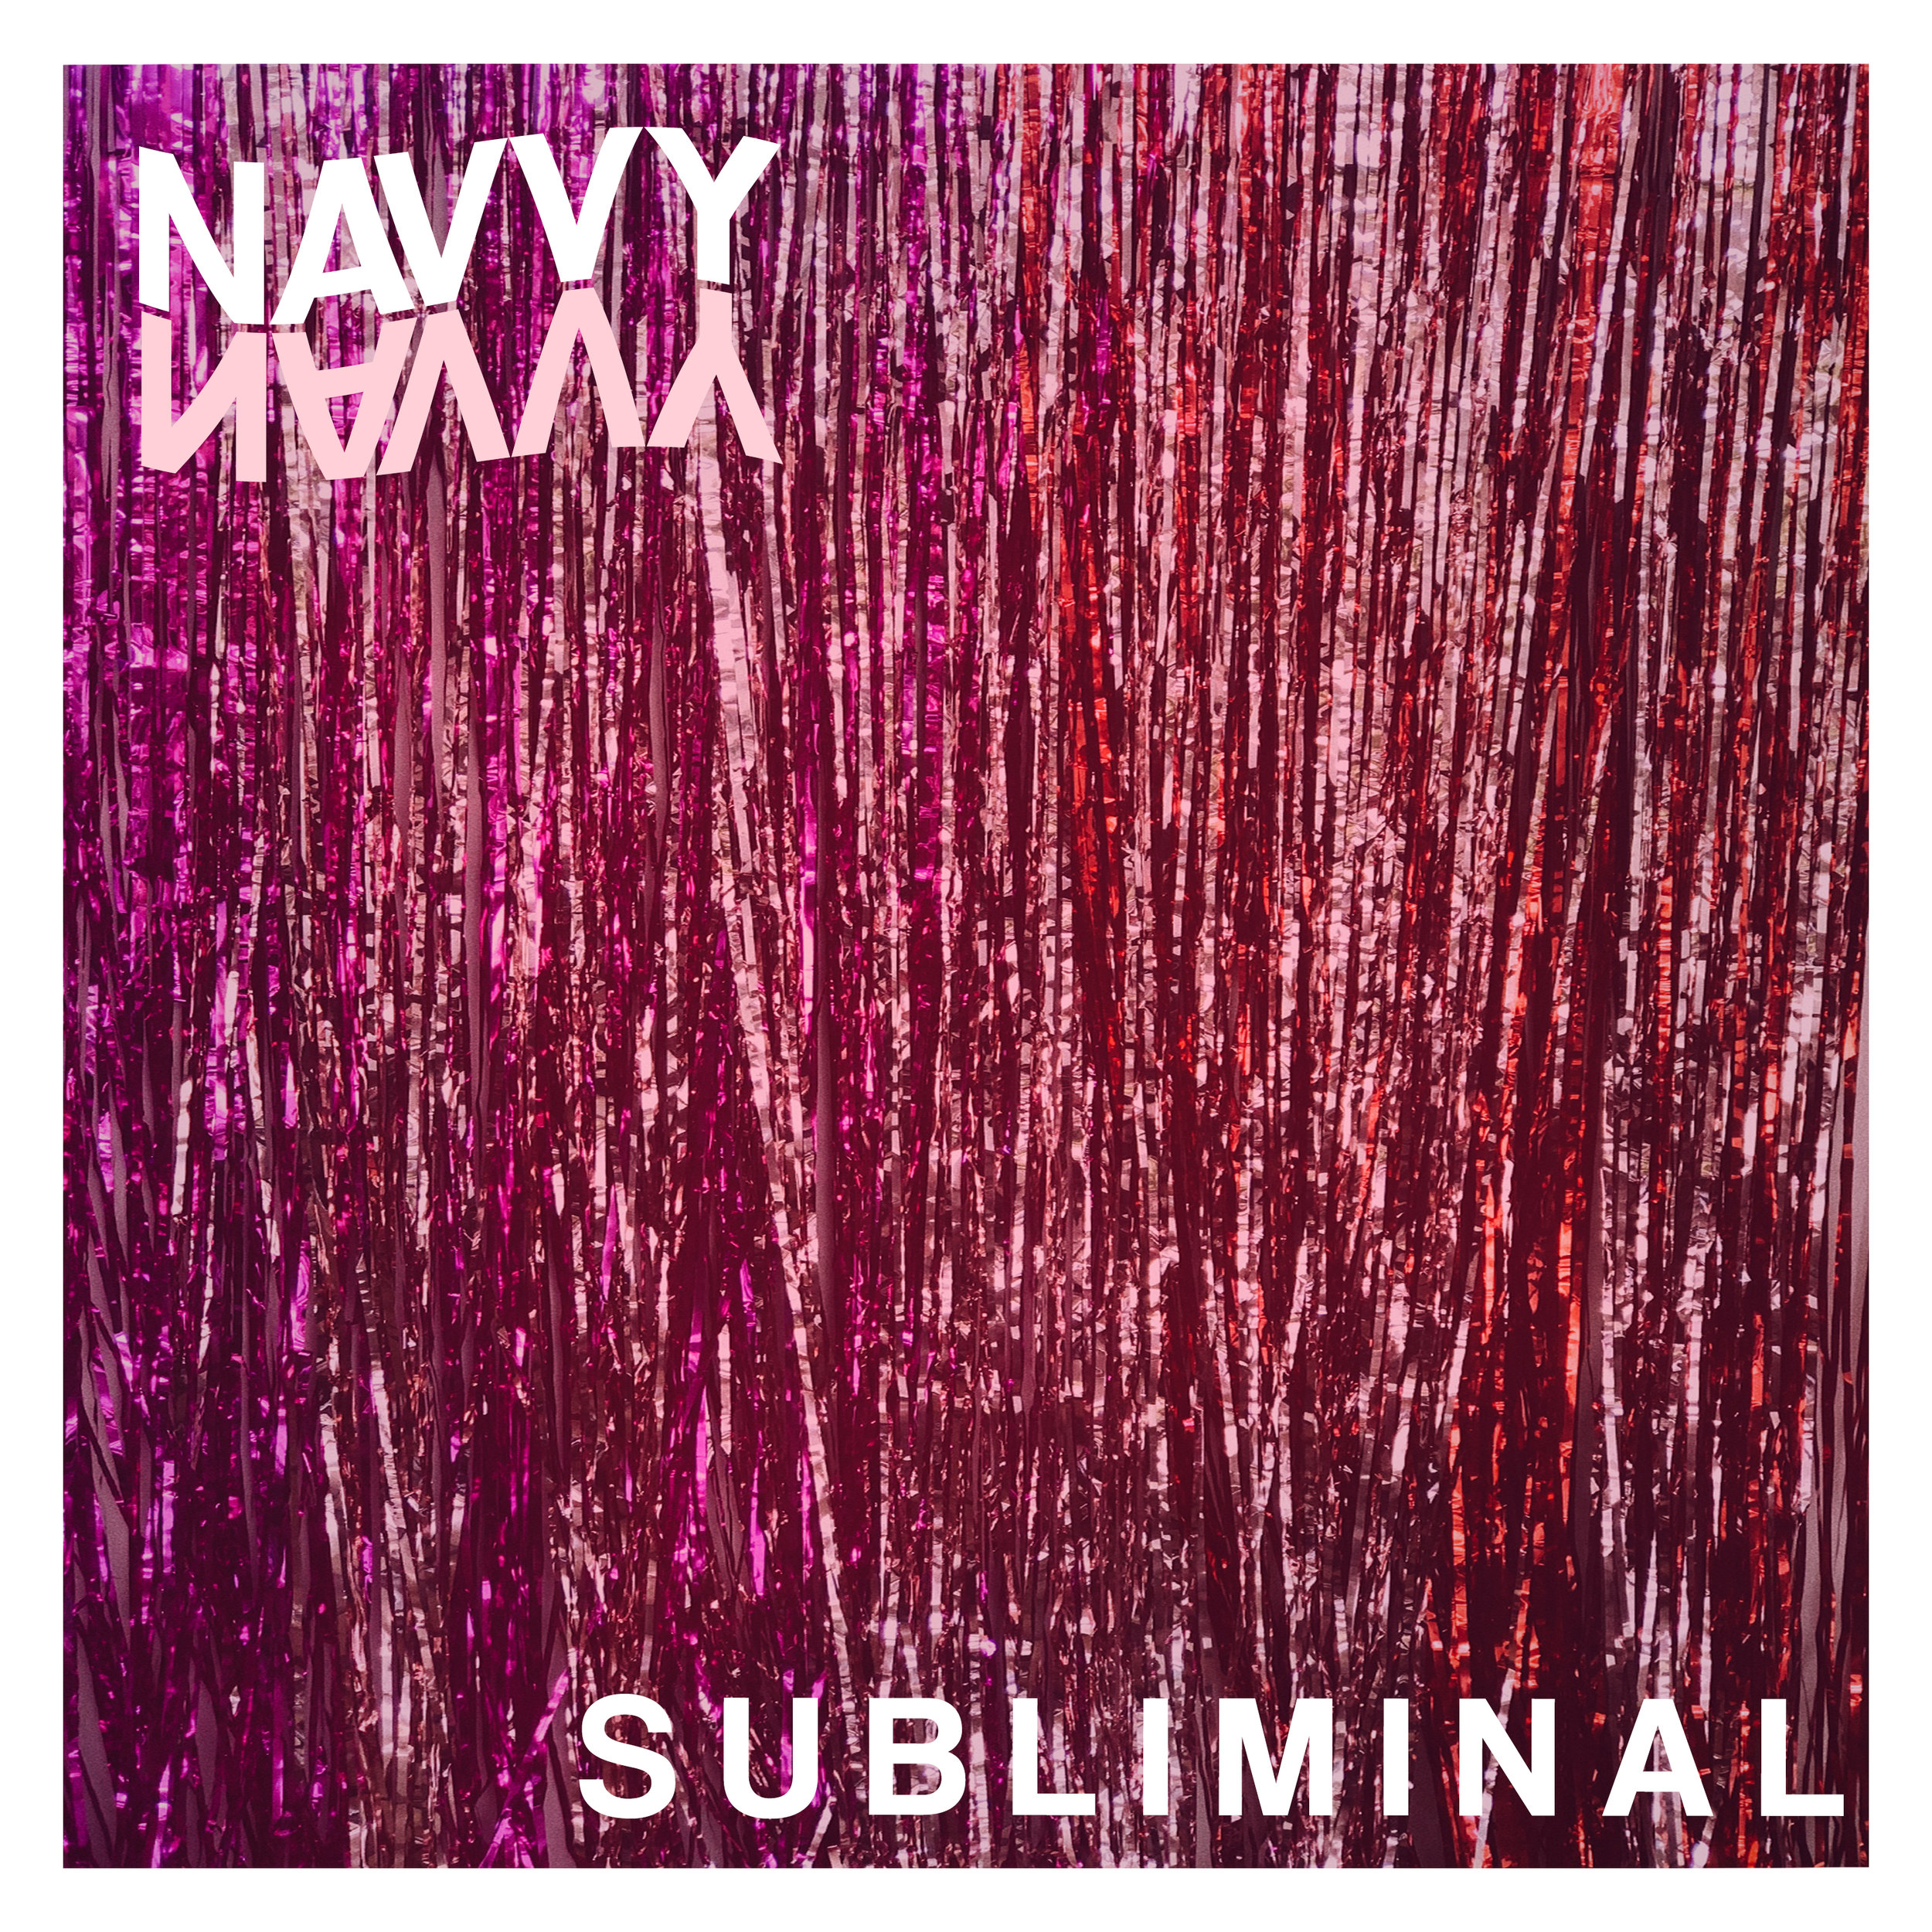 Credits - Co-written by Navvy and Wells*Vocals by NavvyProduced by Wells*Additional keys by Navvy & Wells